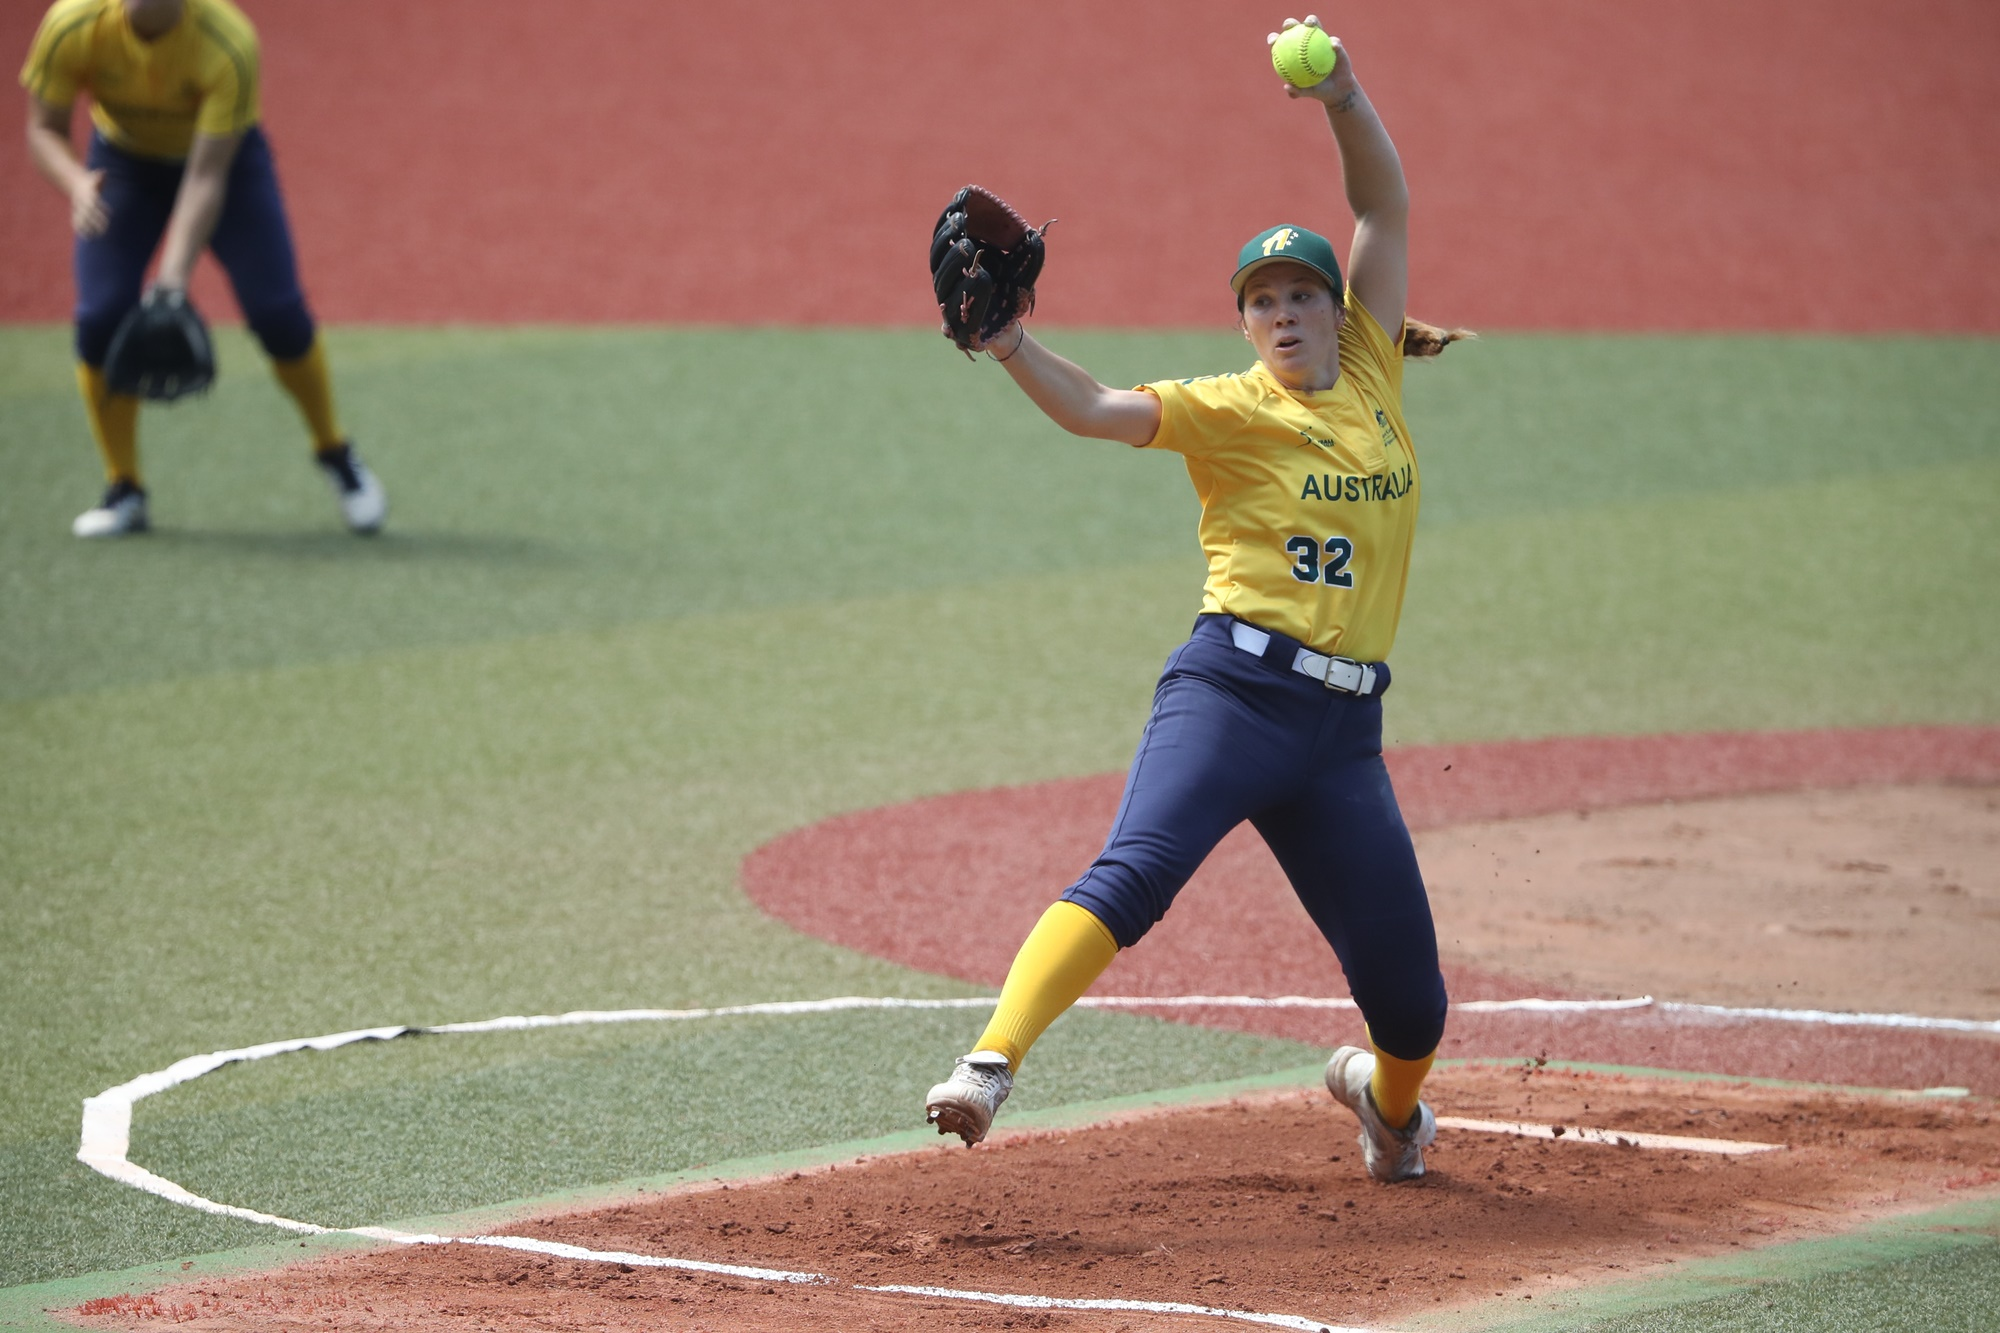 Kaia Parnaby went 8 innings and picked the win for Australia